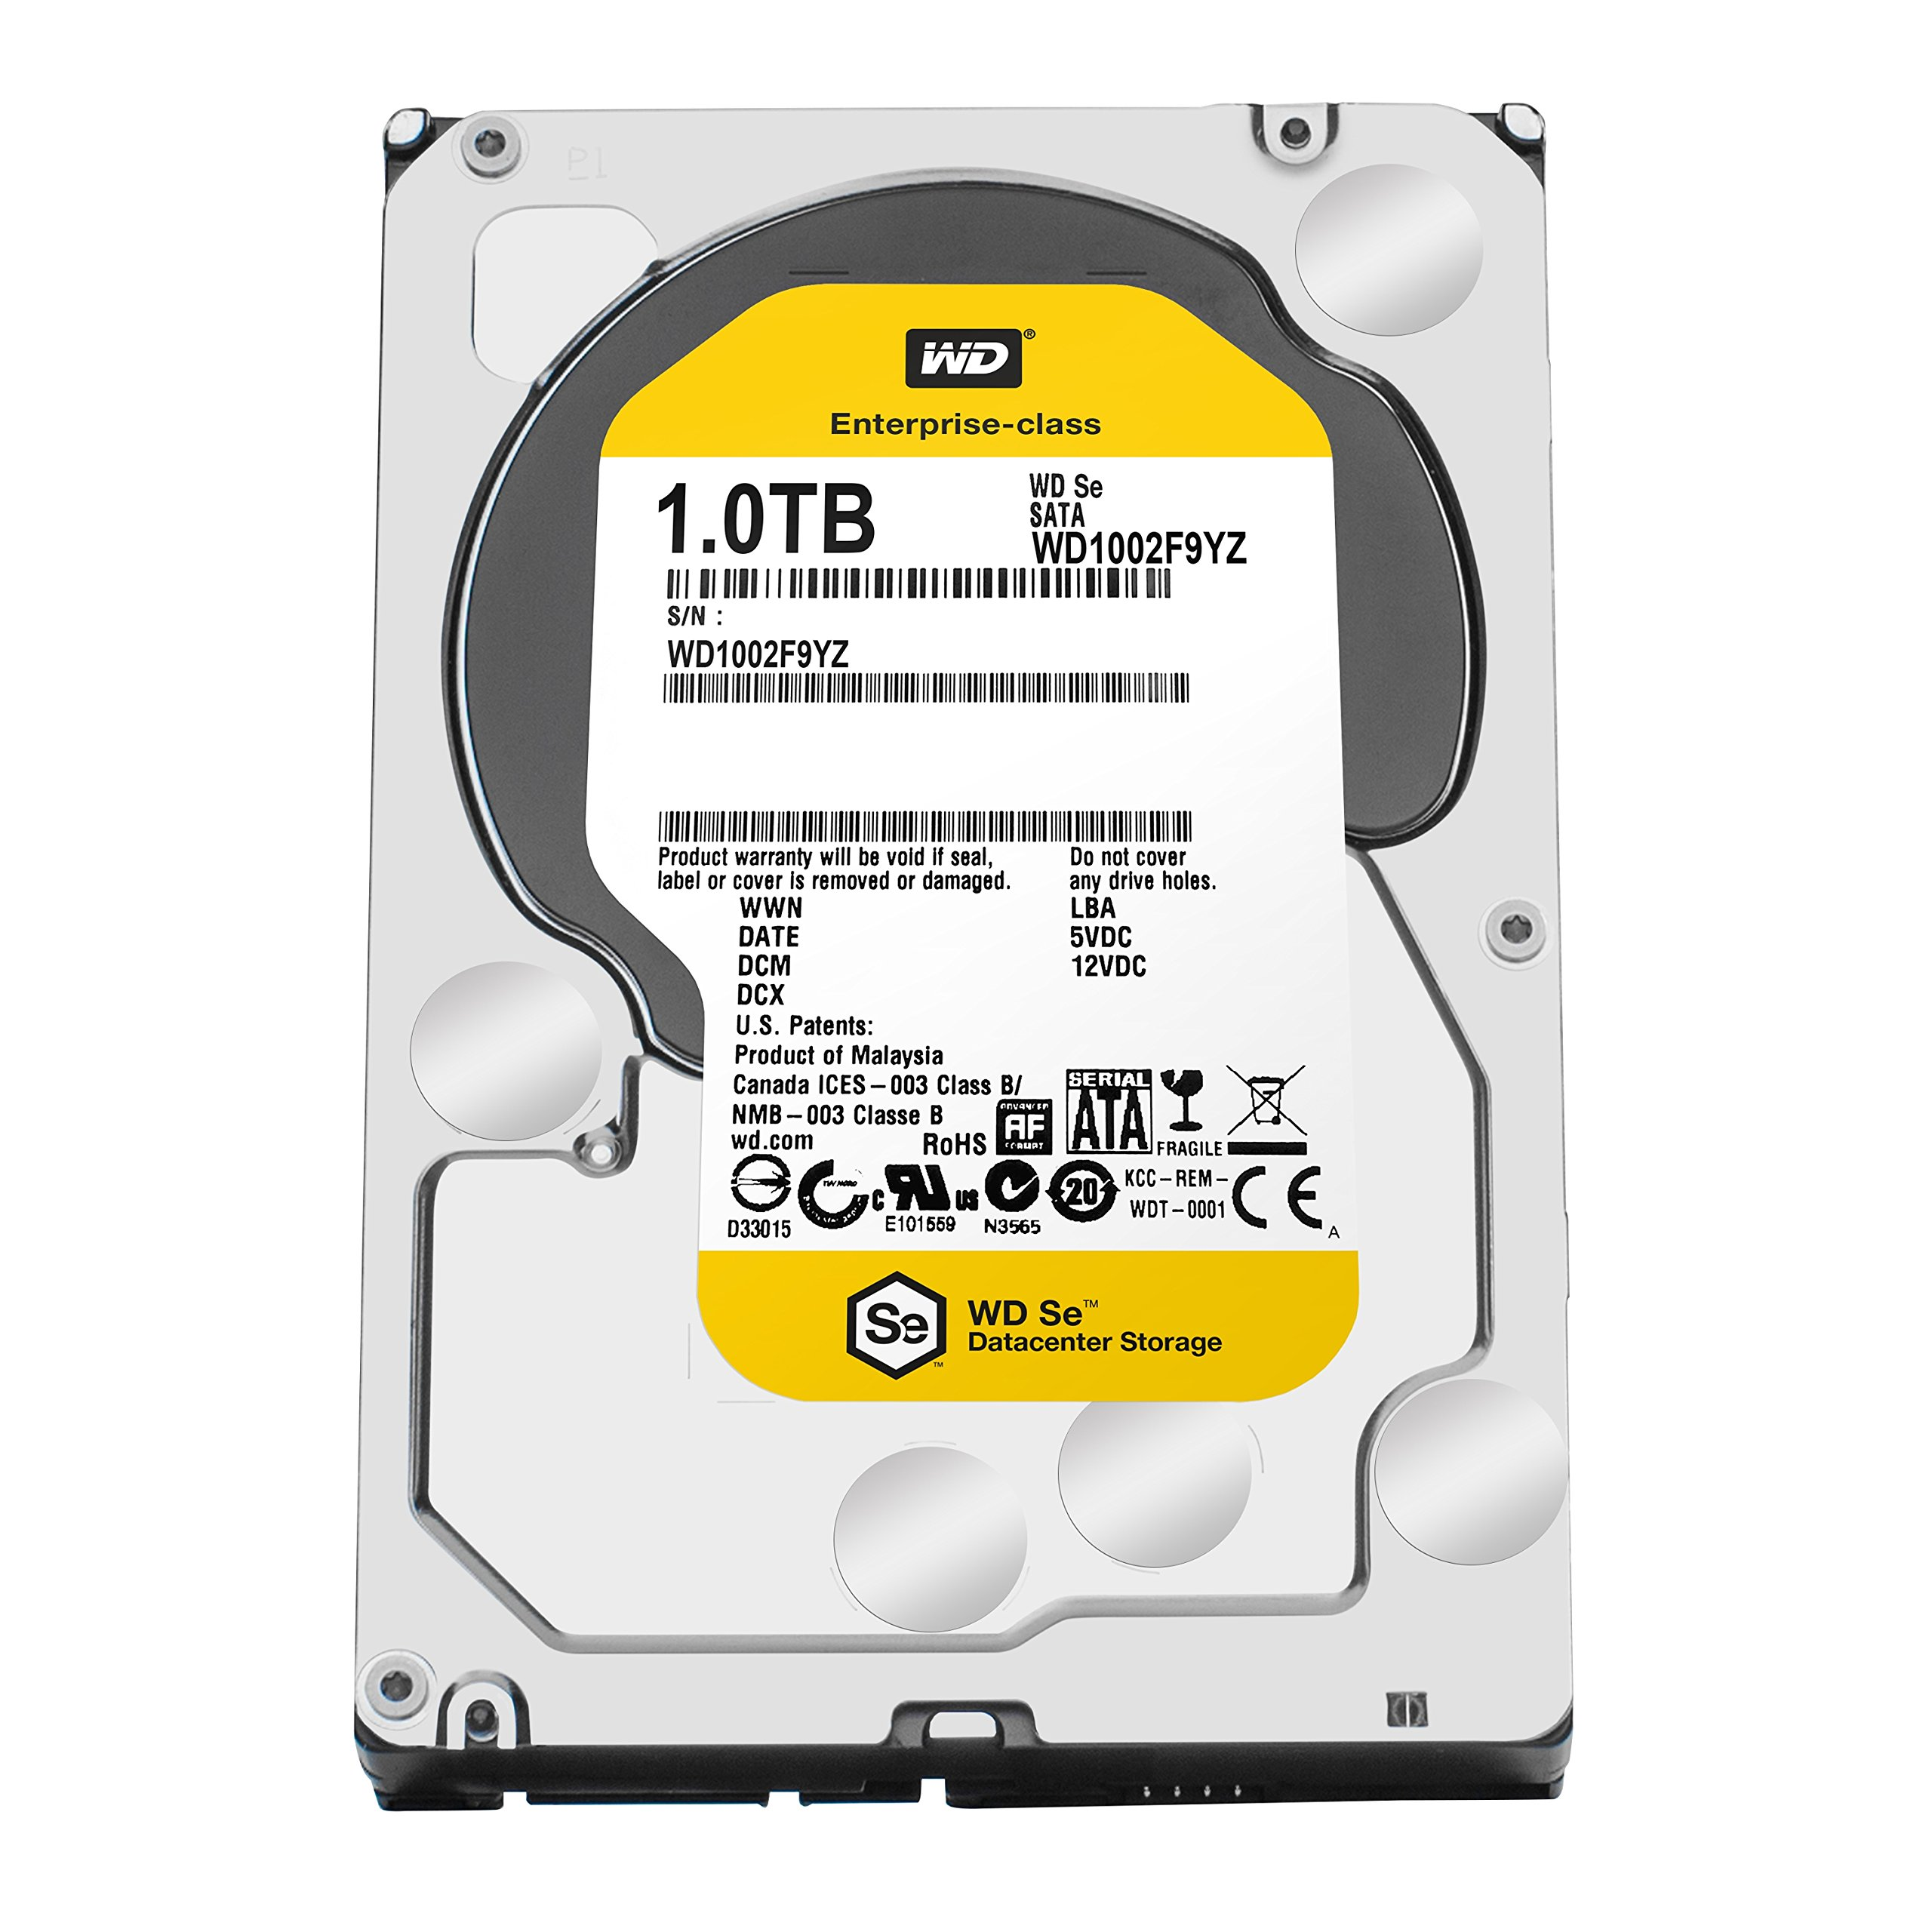 WD SE 1TB Datacenter Hard Disk Drive - 7200 RPM SATA 6 Gb/s 128MB Cache 3.5 Inch - WD1002F9YZ by Western Digital